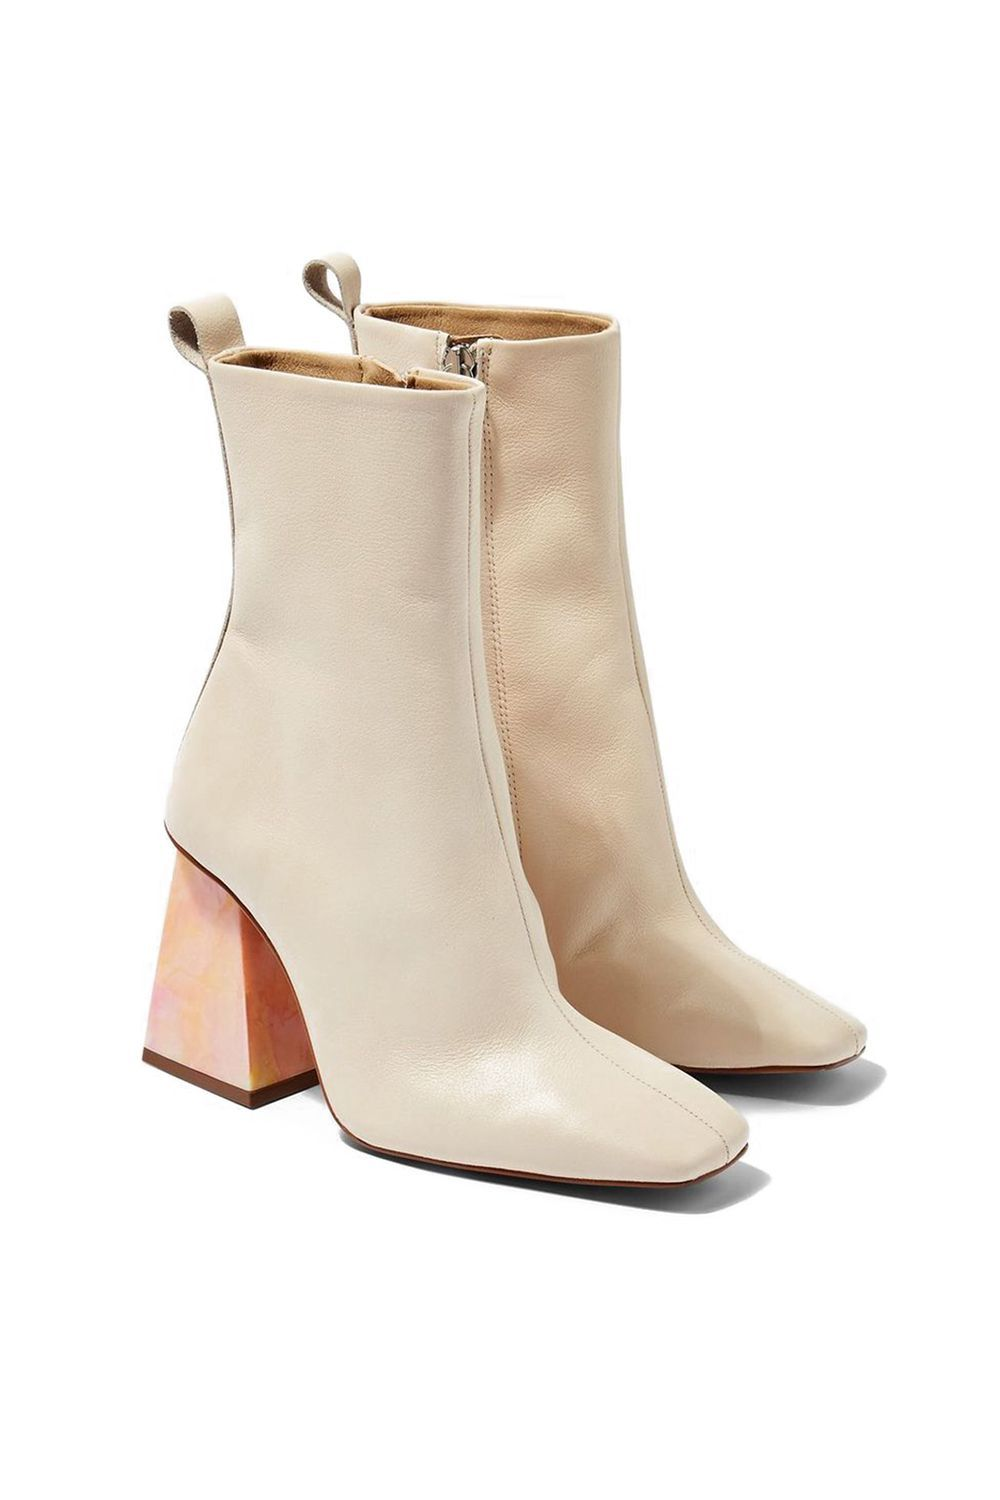 Squared-Toe Boots With a Tie-Dye Marble Heel Top Shop topshop.com $170.00 SHOP IT For the forever wild child, these cream-colored boots feature a squared-toe shape with a tie-dye marble heel. Wear these to an art gallery opening or when you're exploring a new city for a truly chic adventure.